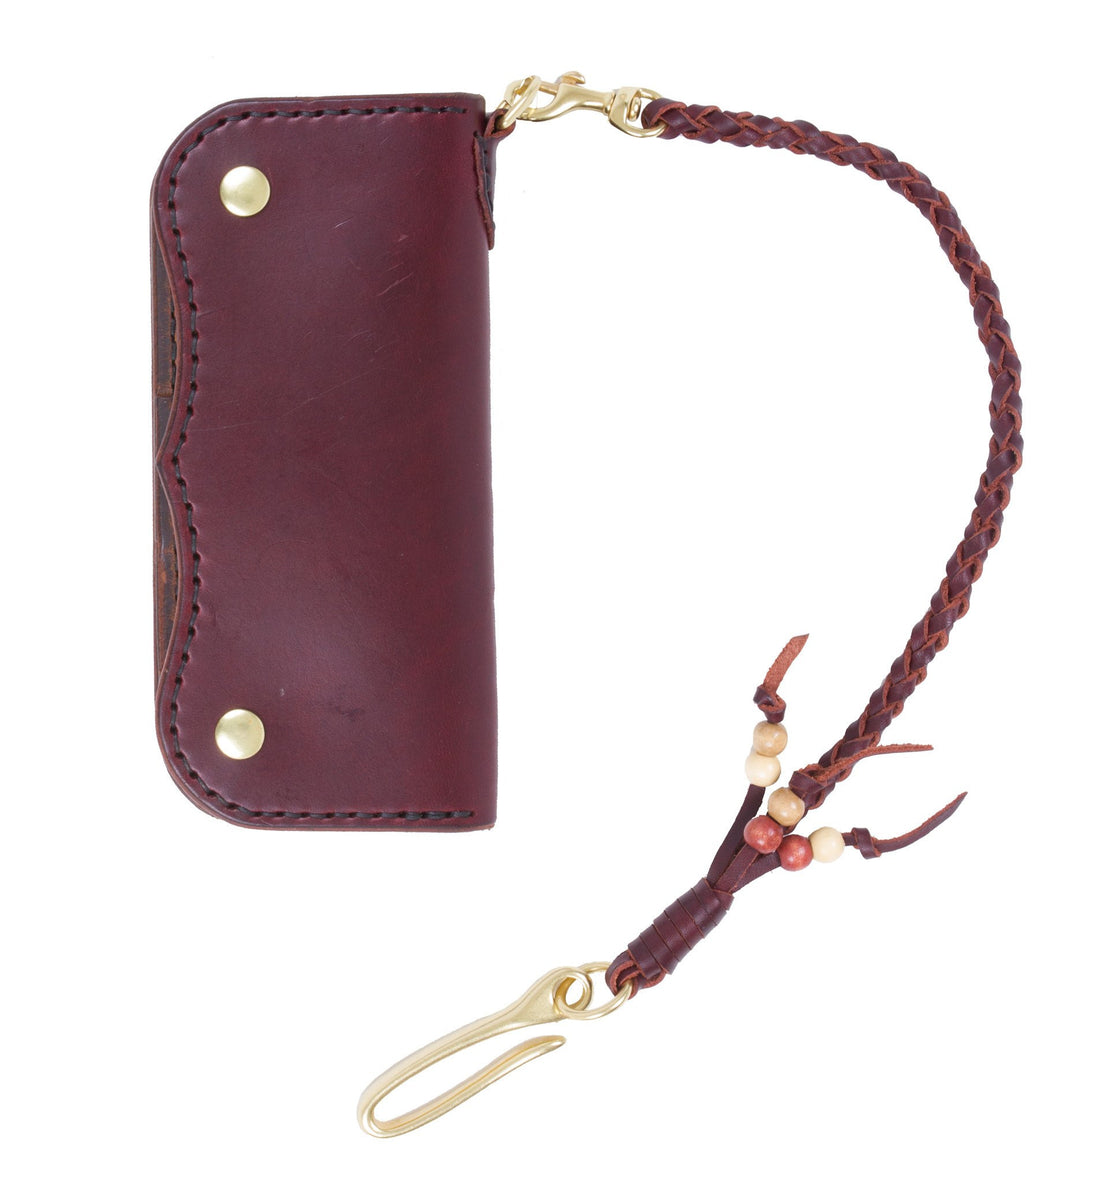 Cult Classic Leather Magnum Wallet, Brown w/braid